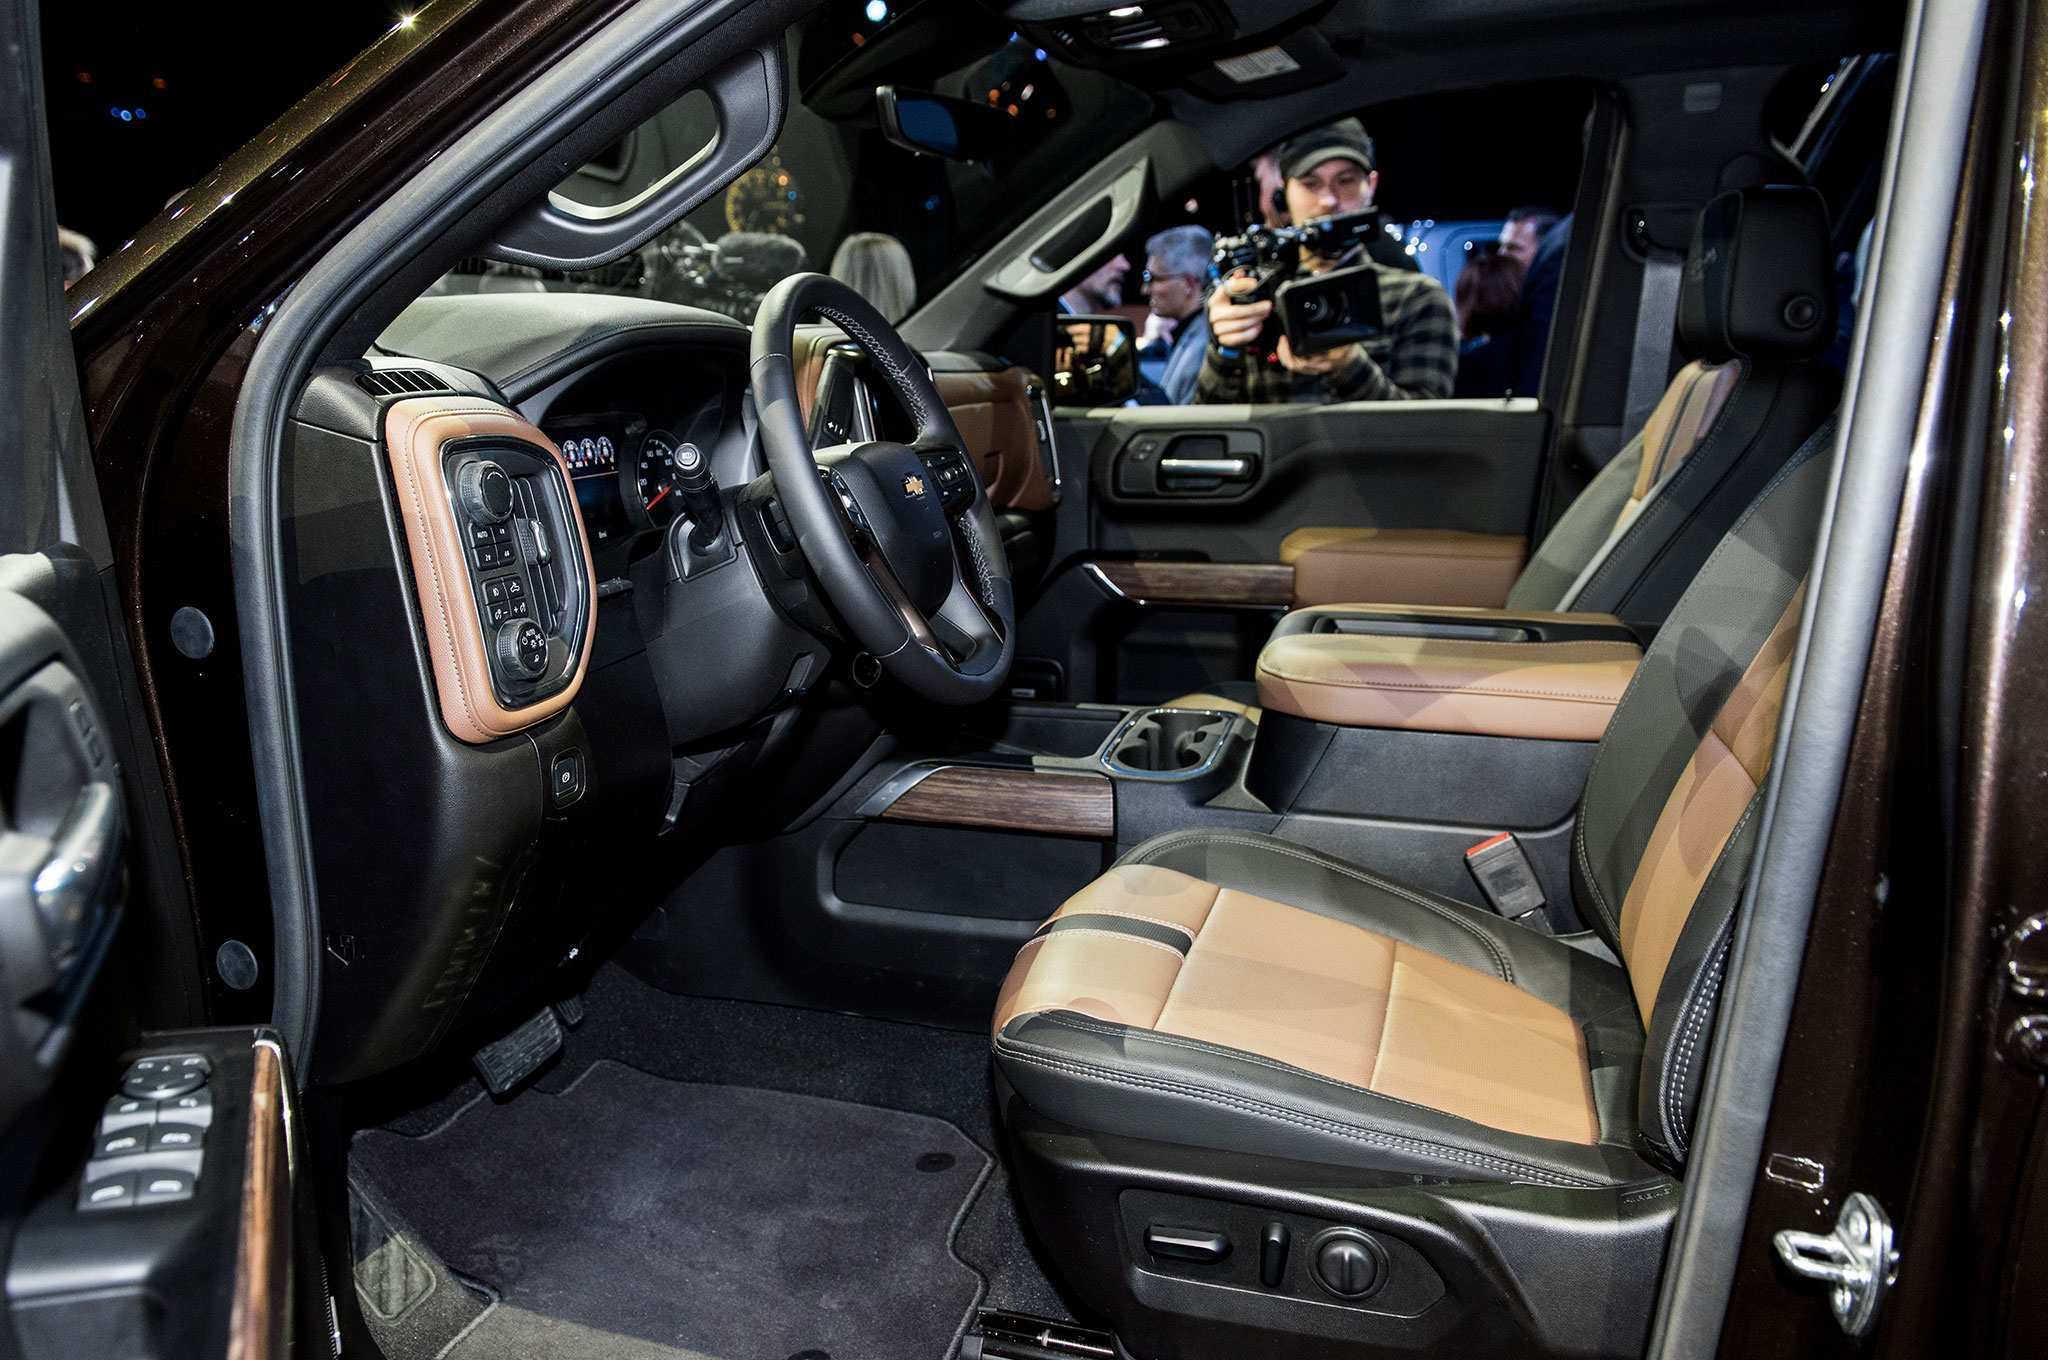 93 New 2019 Chevrolet High Country Interior New Review